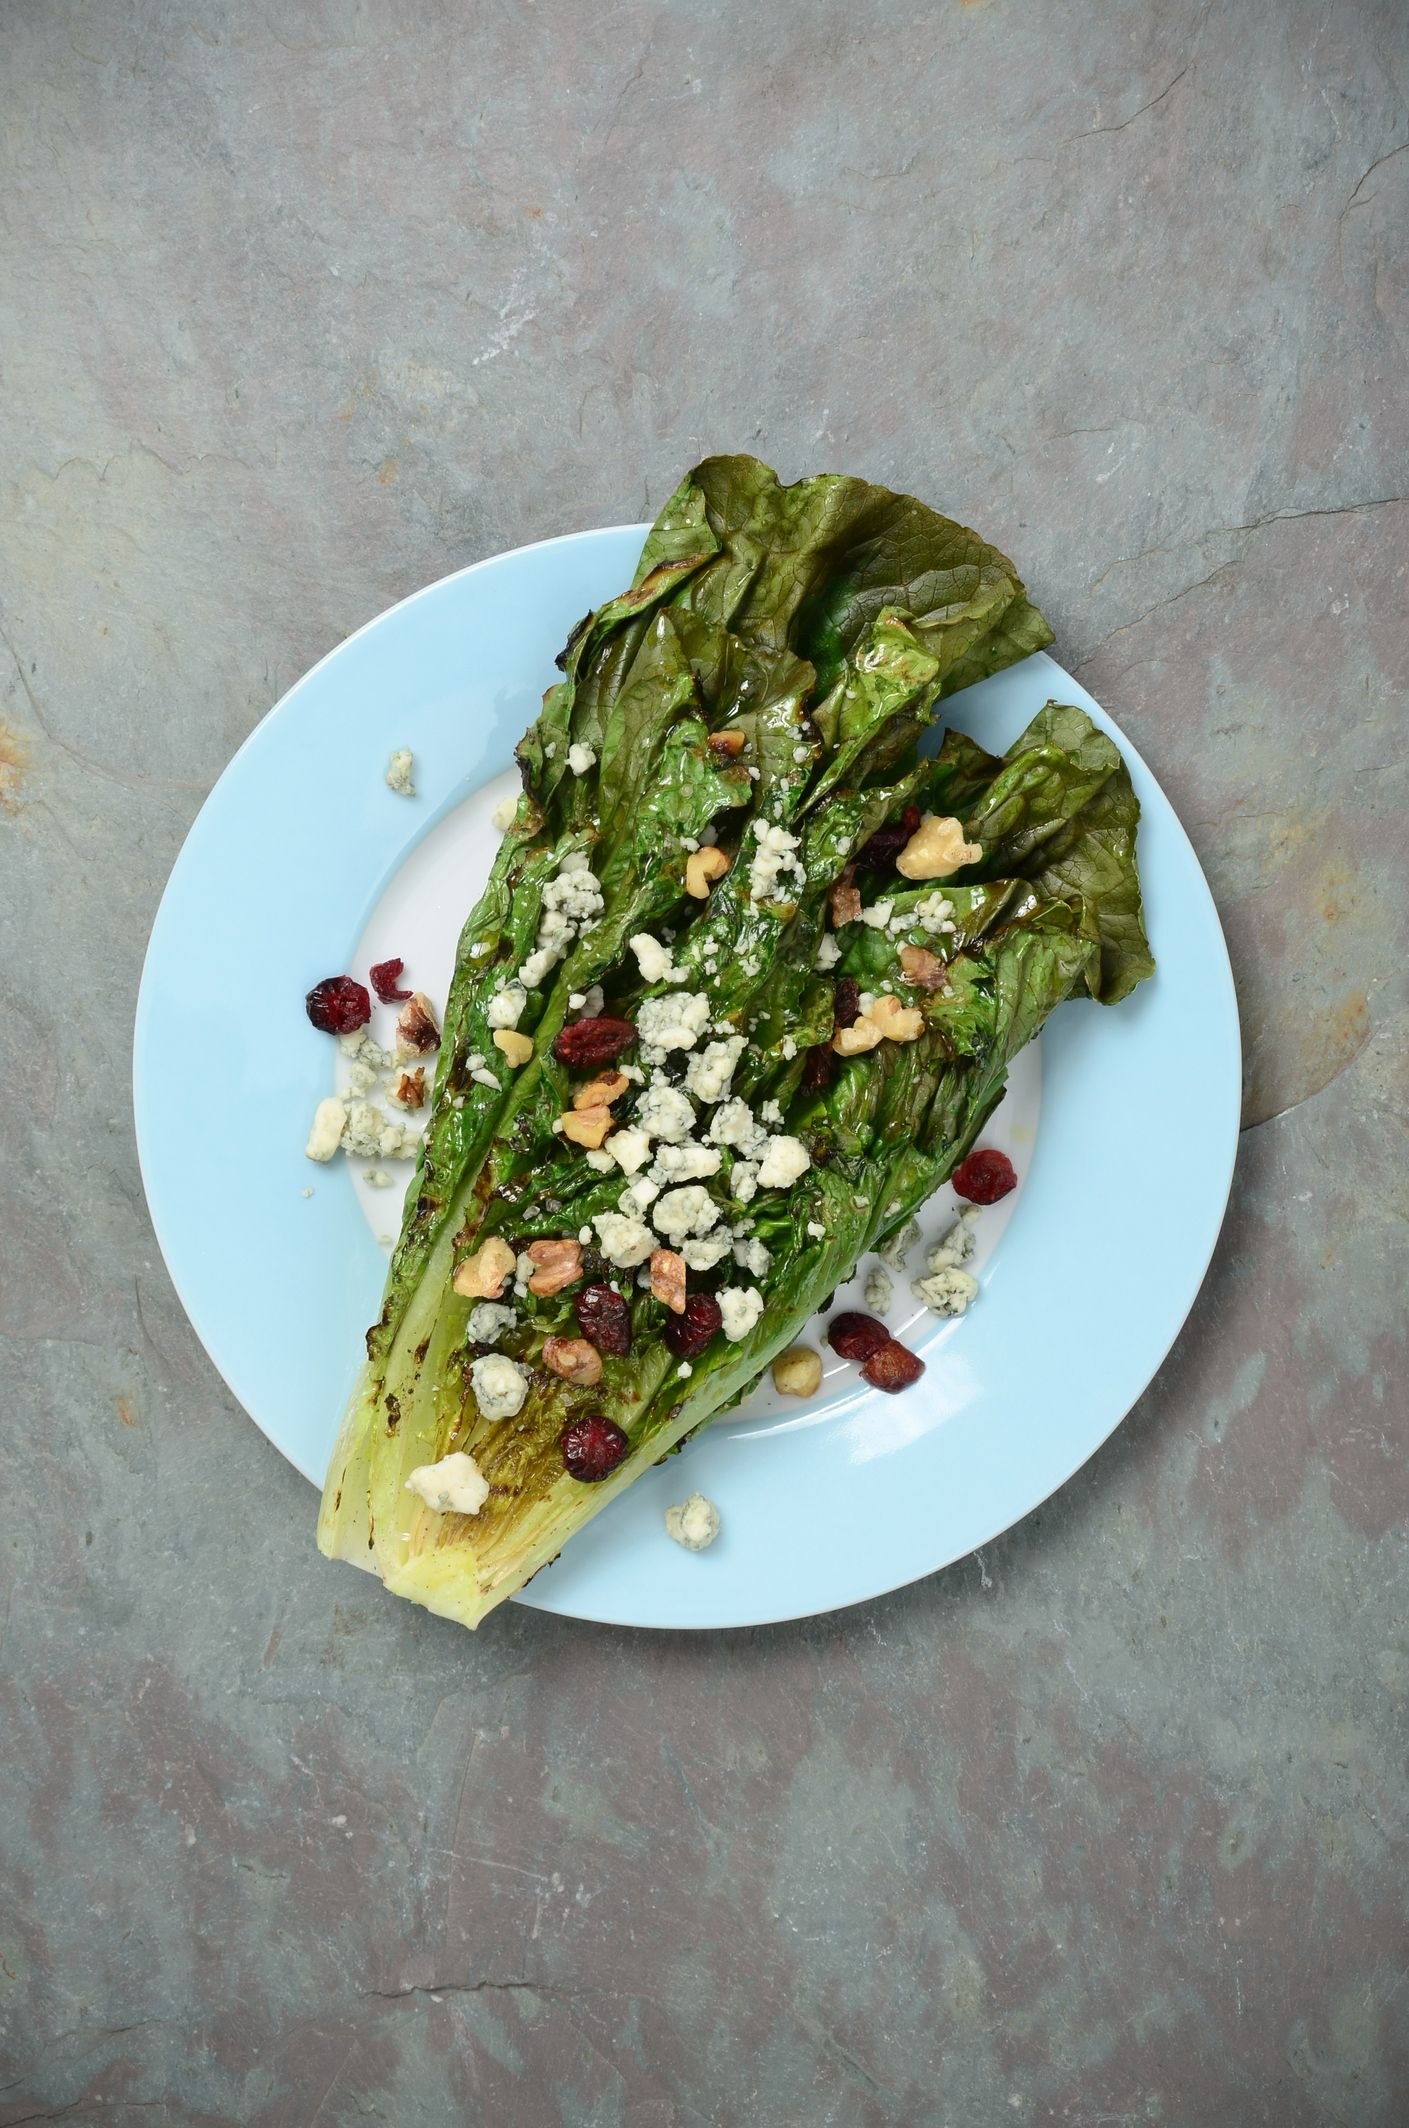 Grilled Romaine Salad with Blue Cheese and Walnuts